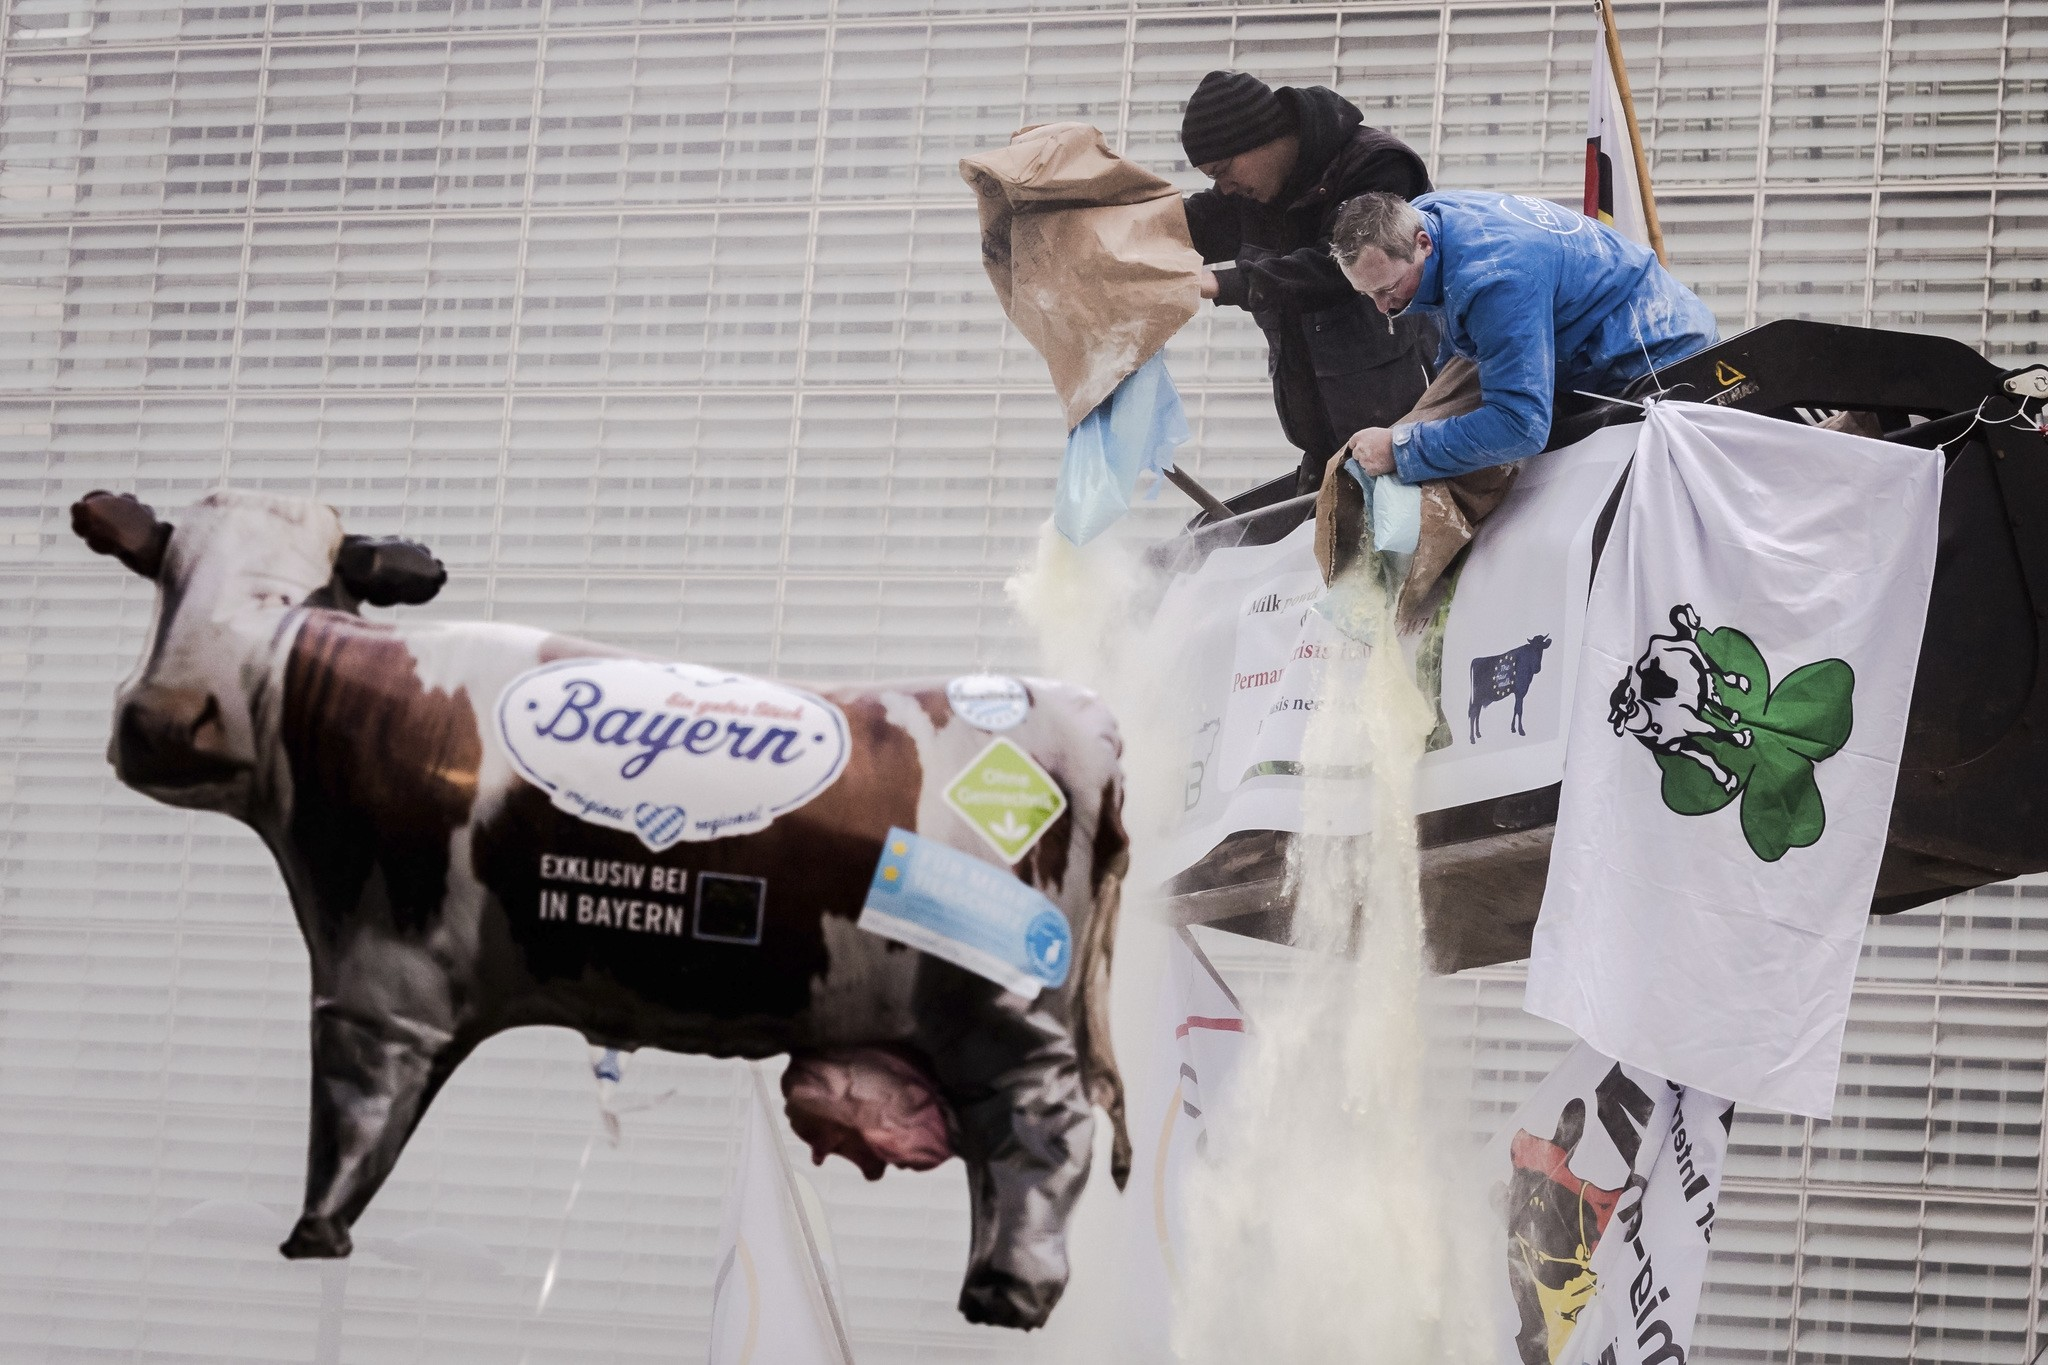 European dairy farmers spray the EU Council building with milk powder to protest the crisis in their sector, in Brussels on Monday, Jan. 23, 2017. (AP Photo)